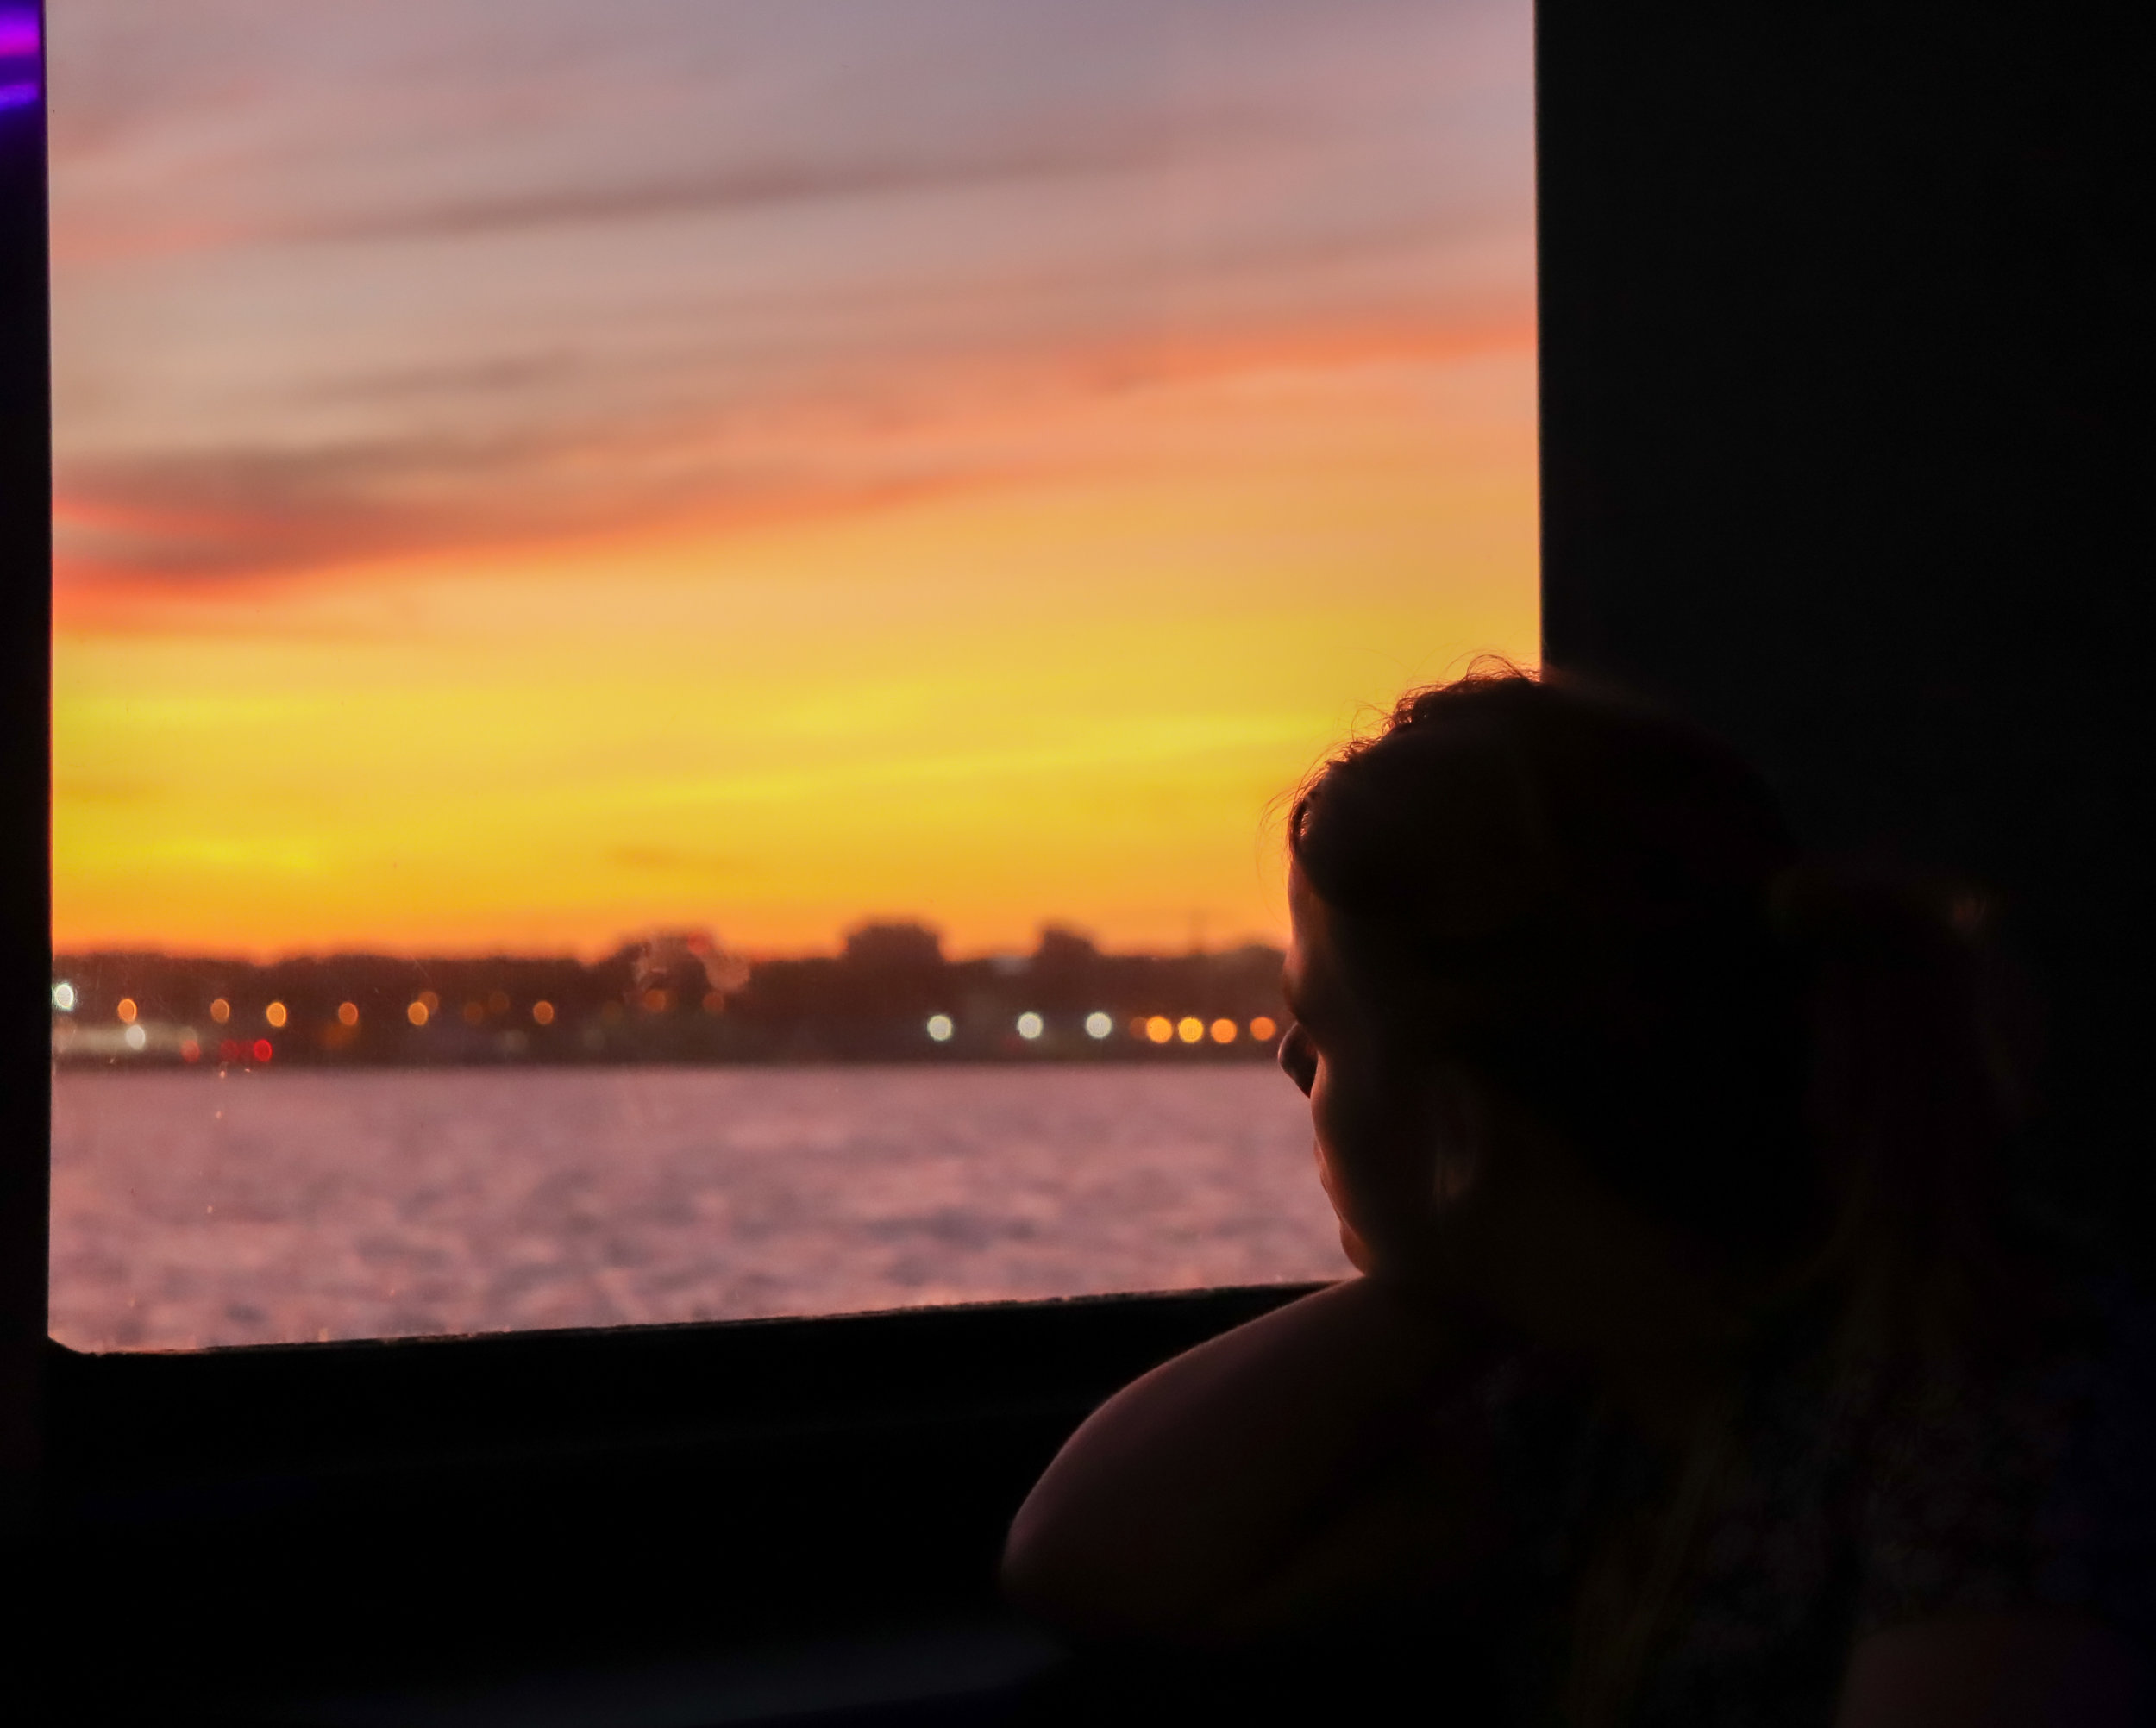 Madi, a residential assistant for the School of The New York Times, stares out the window of a cruise ship as it pulls into the harbour. Meanwhile, loud dance music blares throughout the cabin.